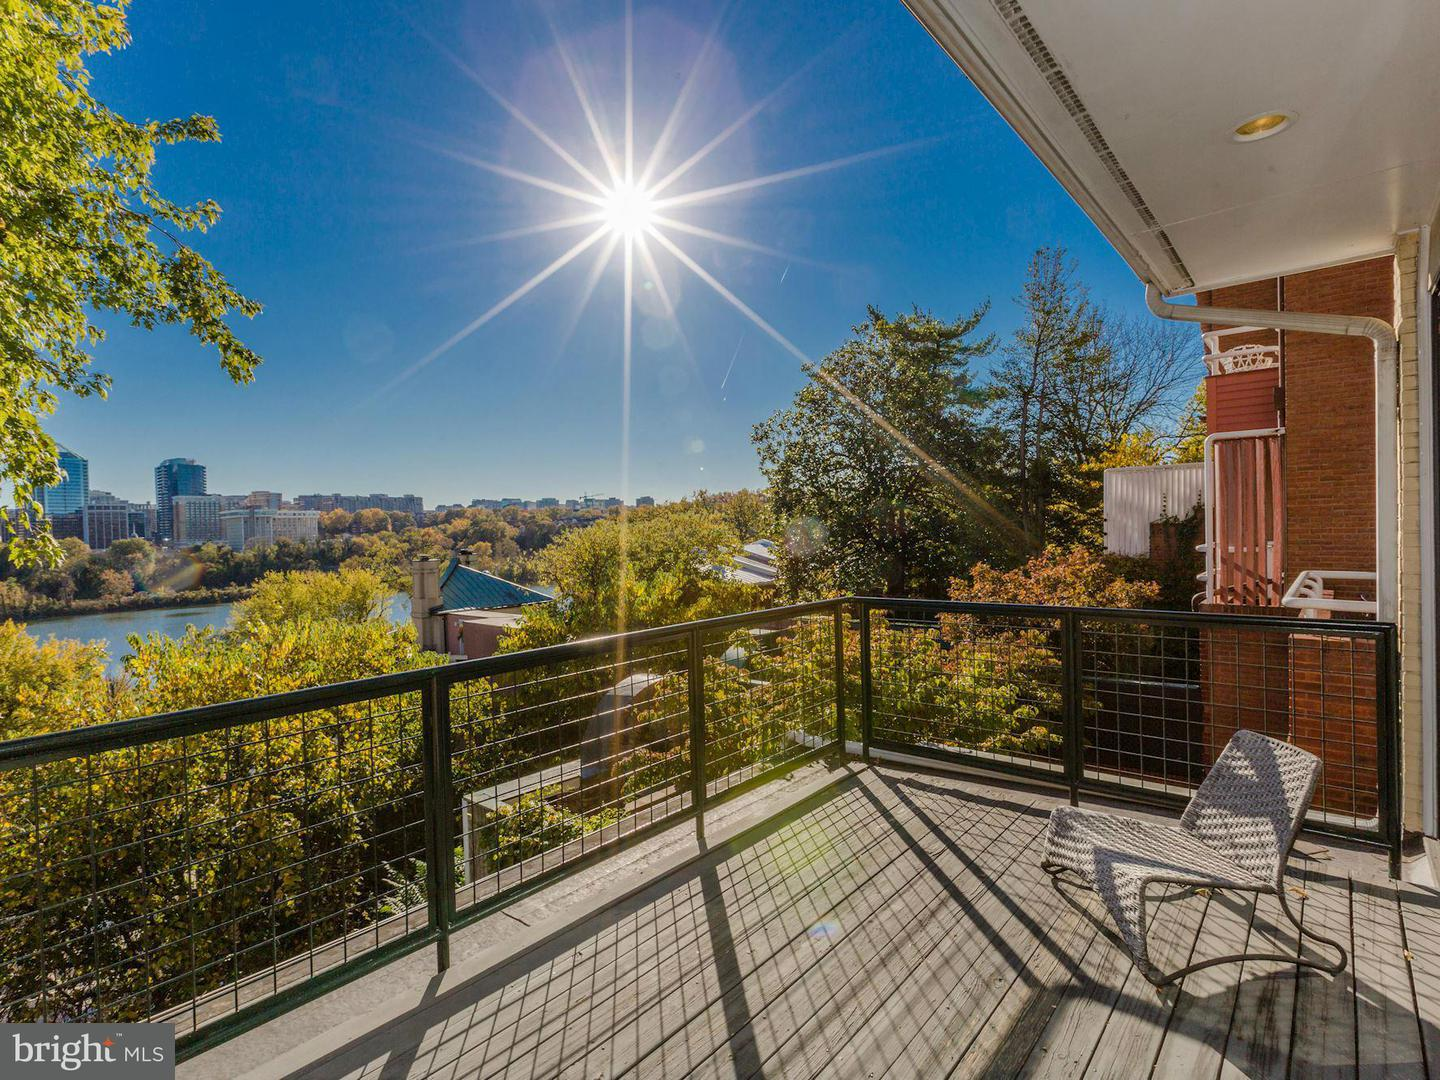 Additional photo for property listing at 3620 Prospect St NW  Washington, District Of Columbia 20007 United States